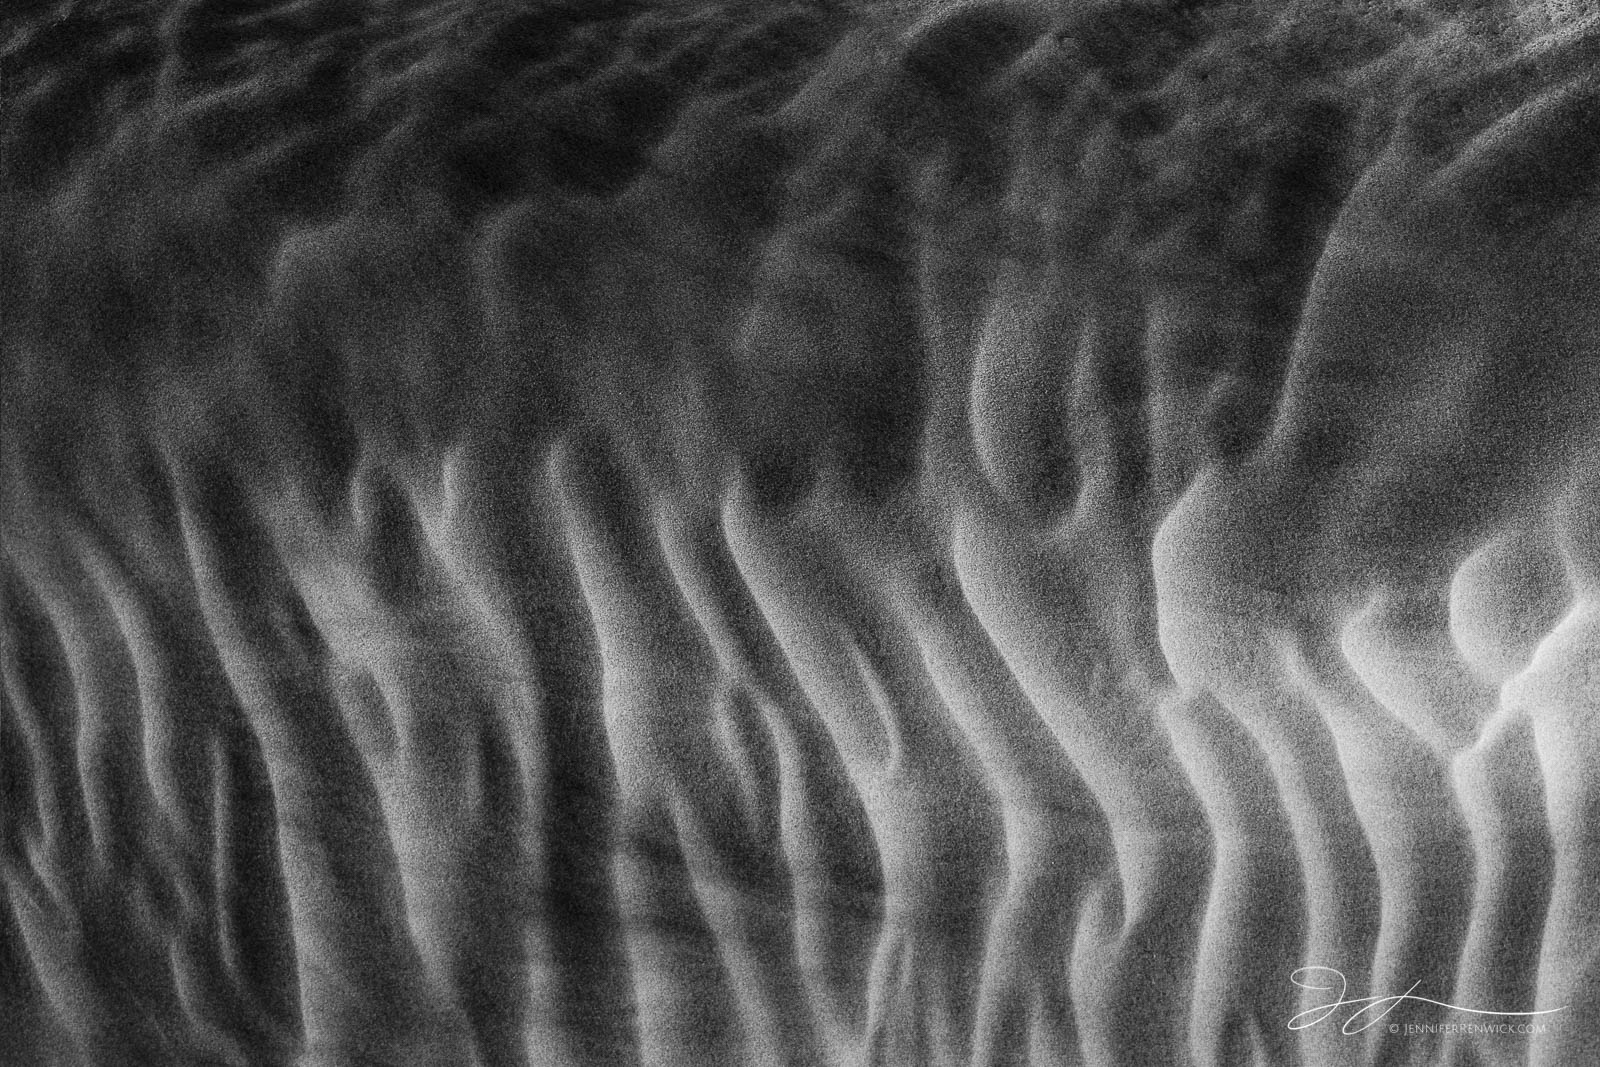 Death Valley National Park, Mojave Desert,  California, abstract photography, sand, backlit, Mesquite Dunes, sand, landscape photography, black and white photography, monochrome, photo